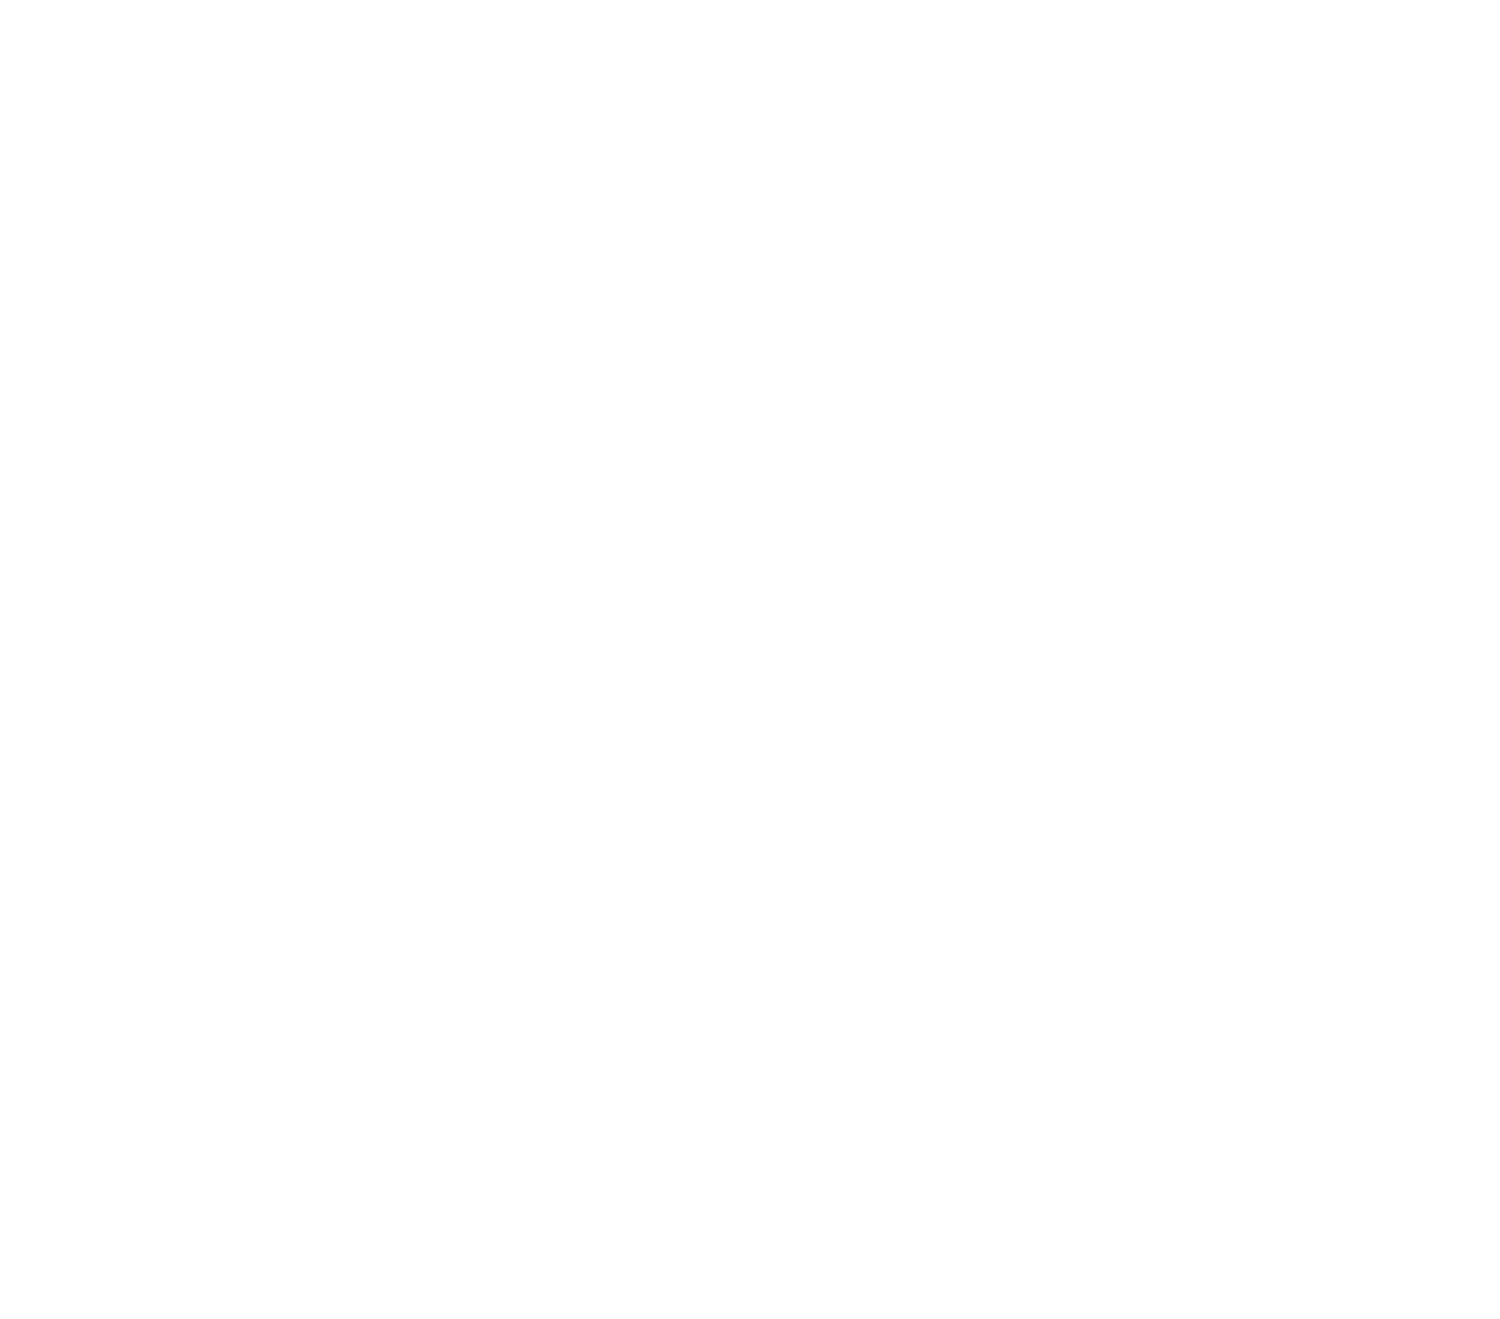 Homes by Bob Tortora